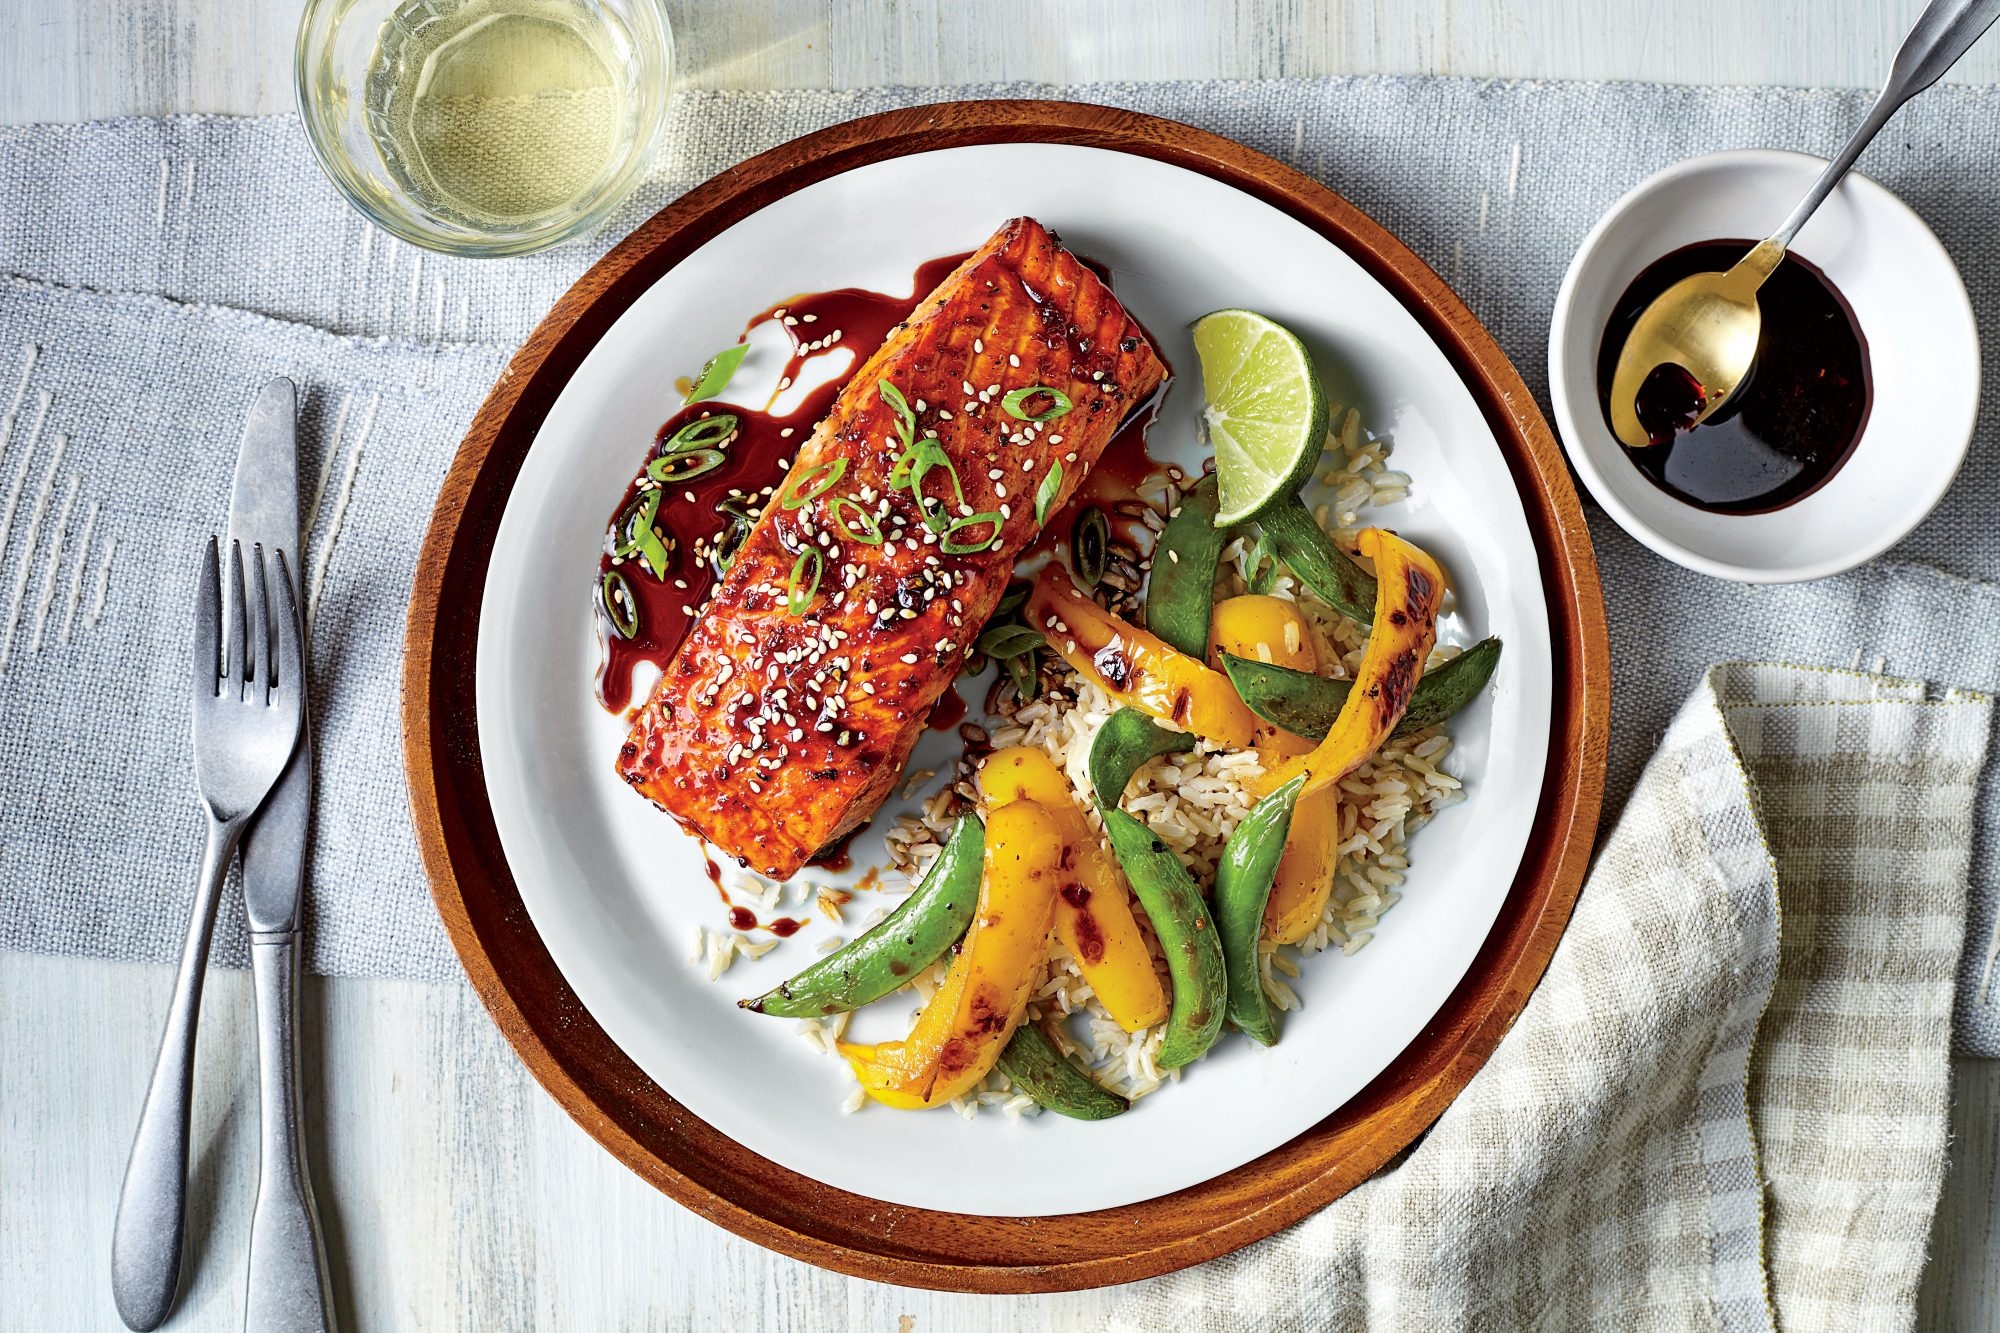 Molasses-Soy Glazed Salmon and Vegetables